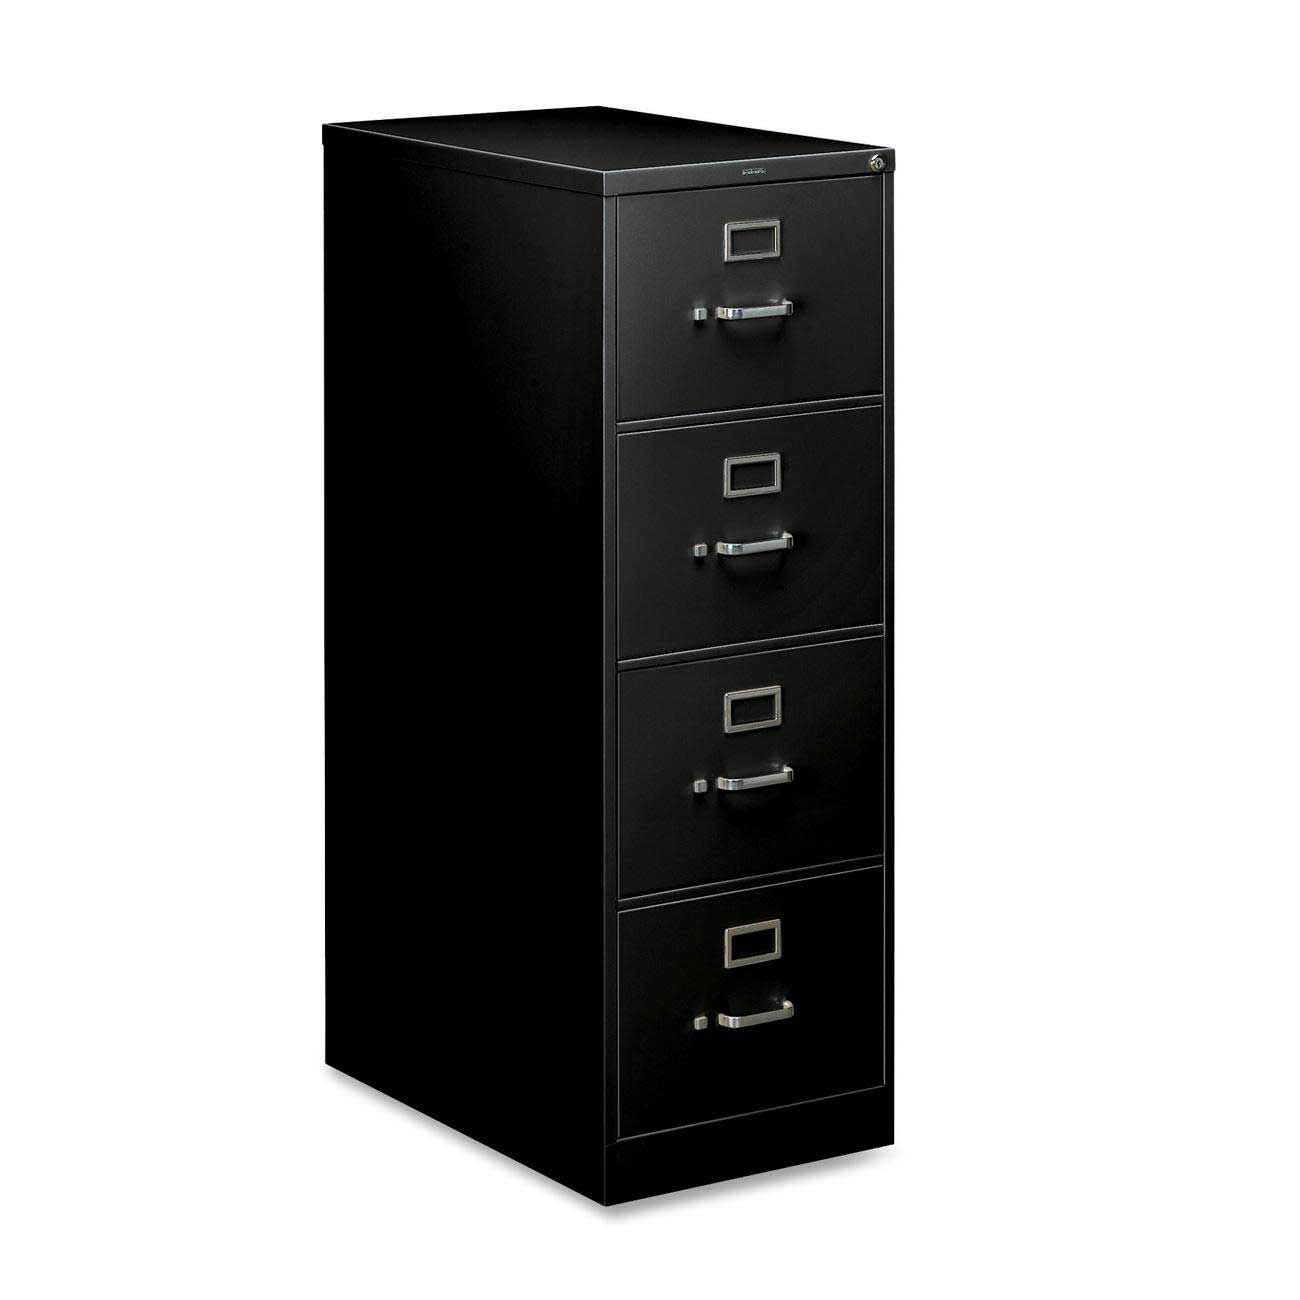 Black HON Vertical File Cabinets with Lock